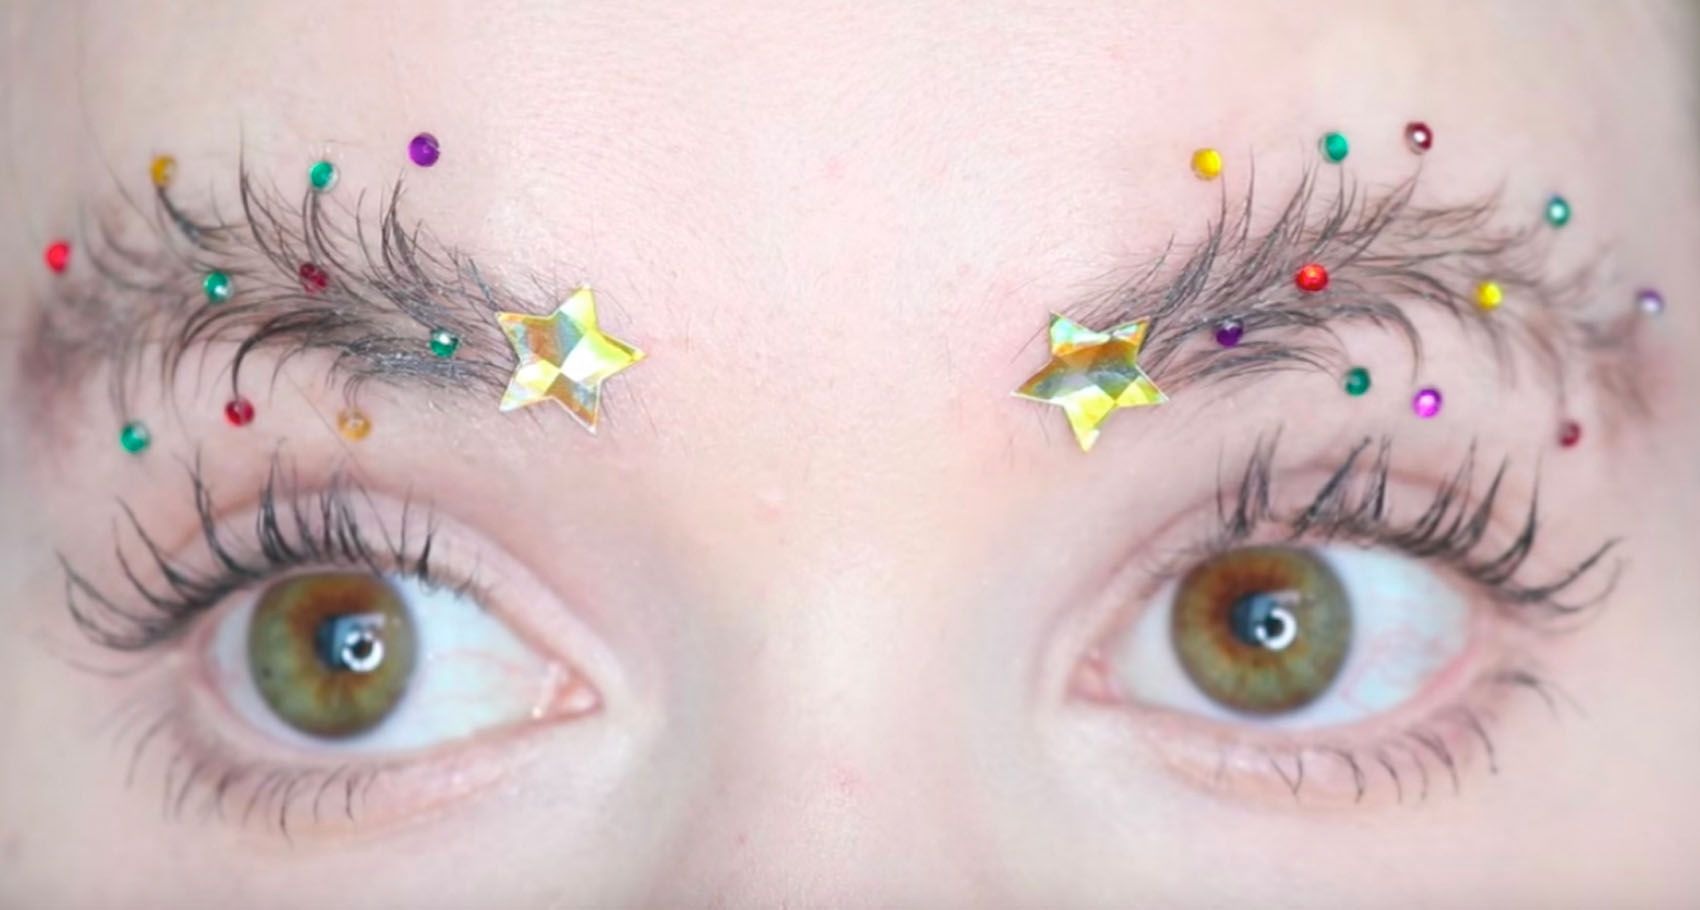 Christmas Tree Eyebrows.Christmas Tree Eyebrows Are The Festive New Trend Taking